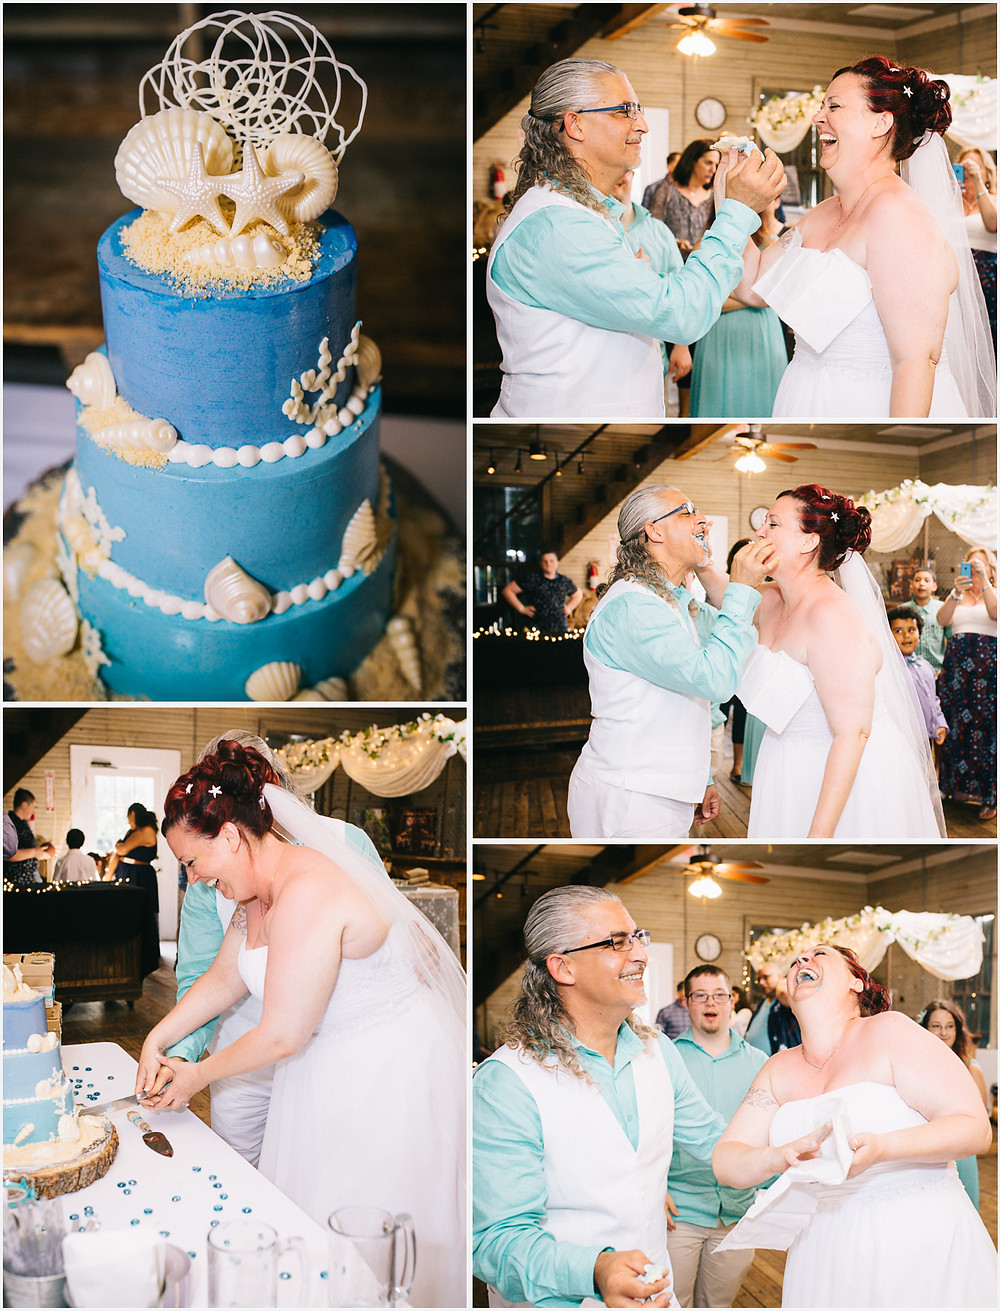 Cake Smash - Maryland Wedding Photographer - Katherine Elizabeth Photography